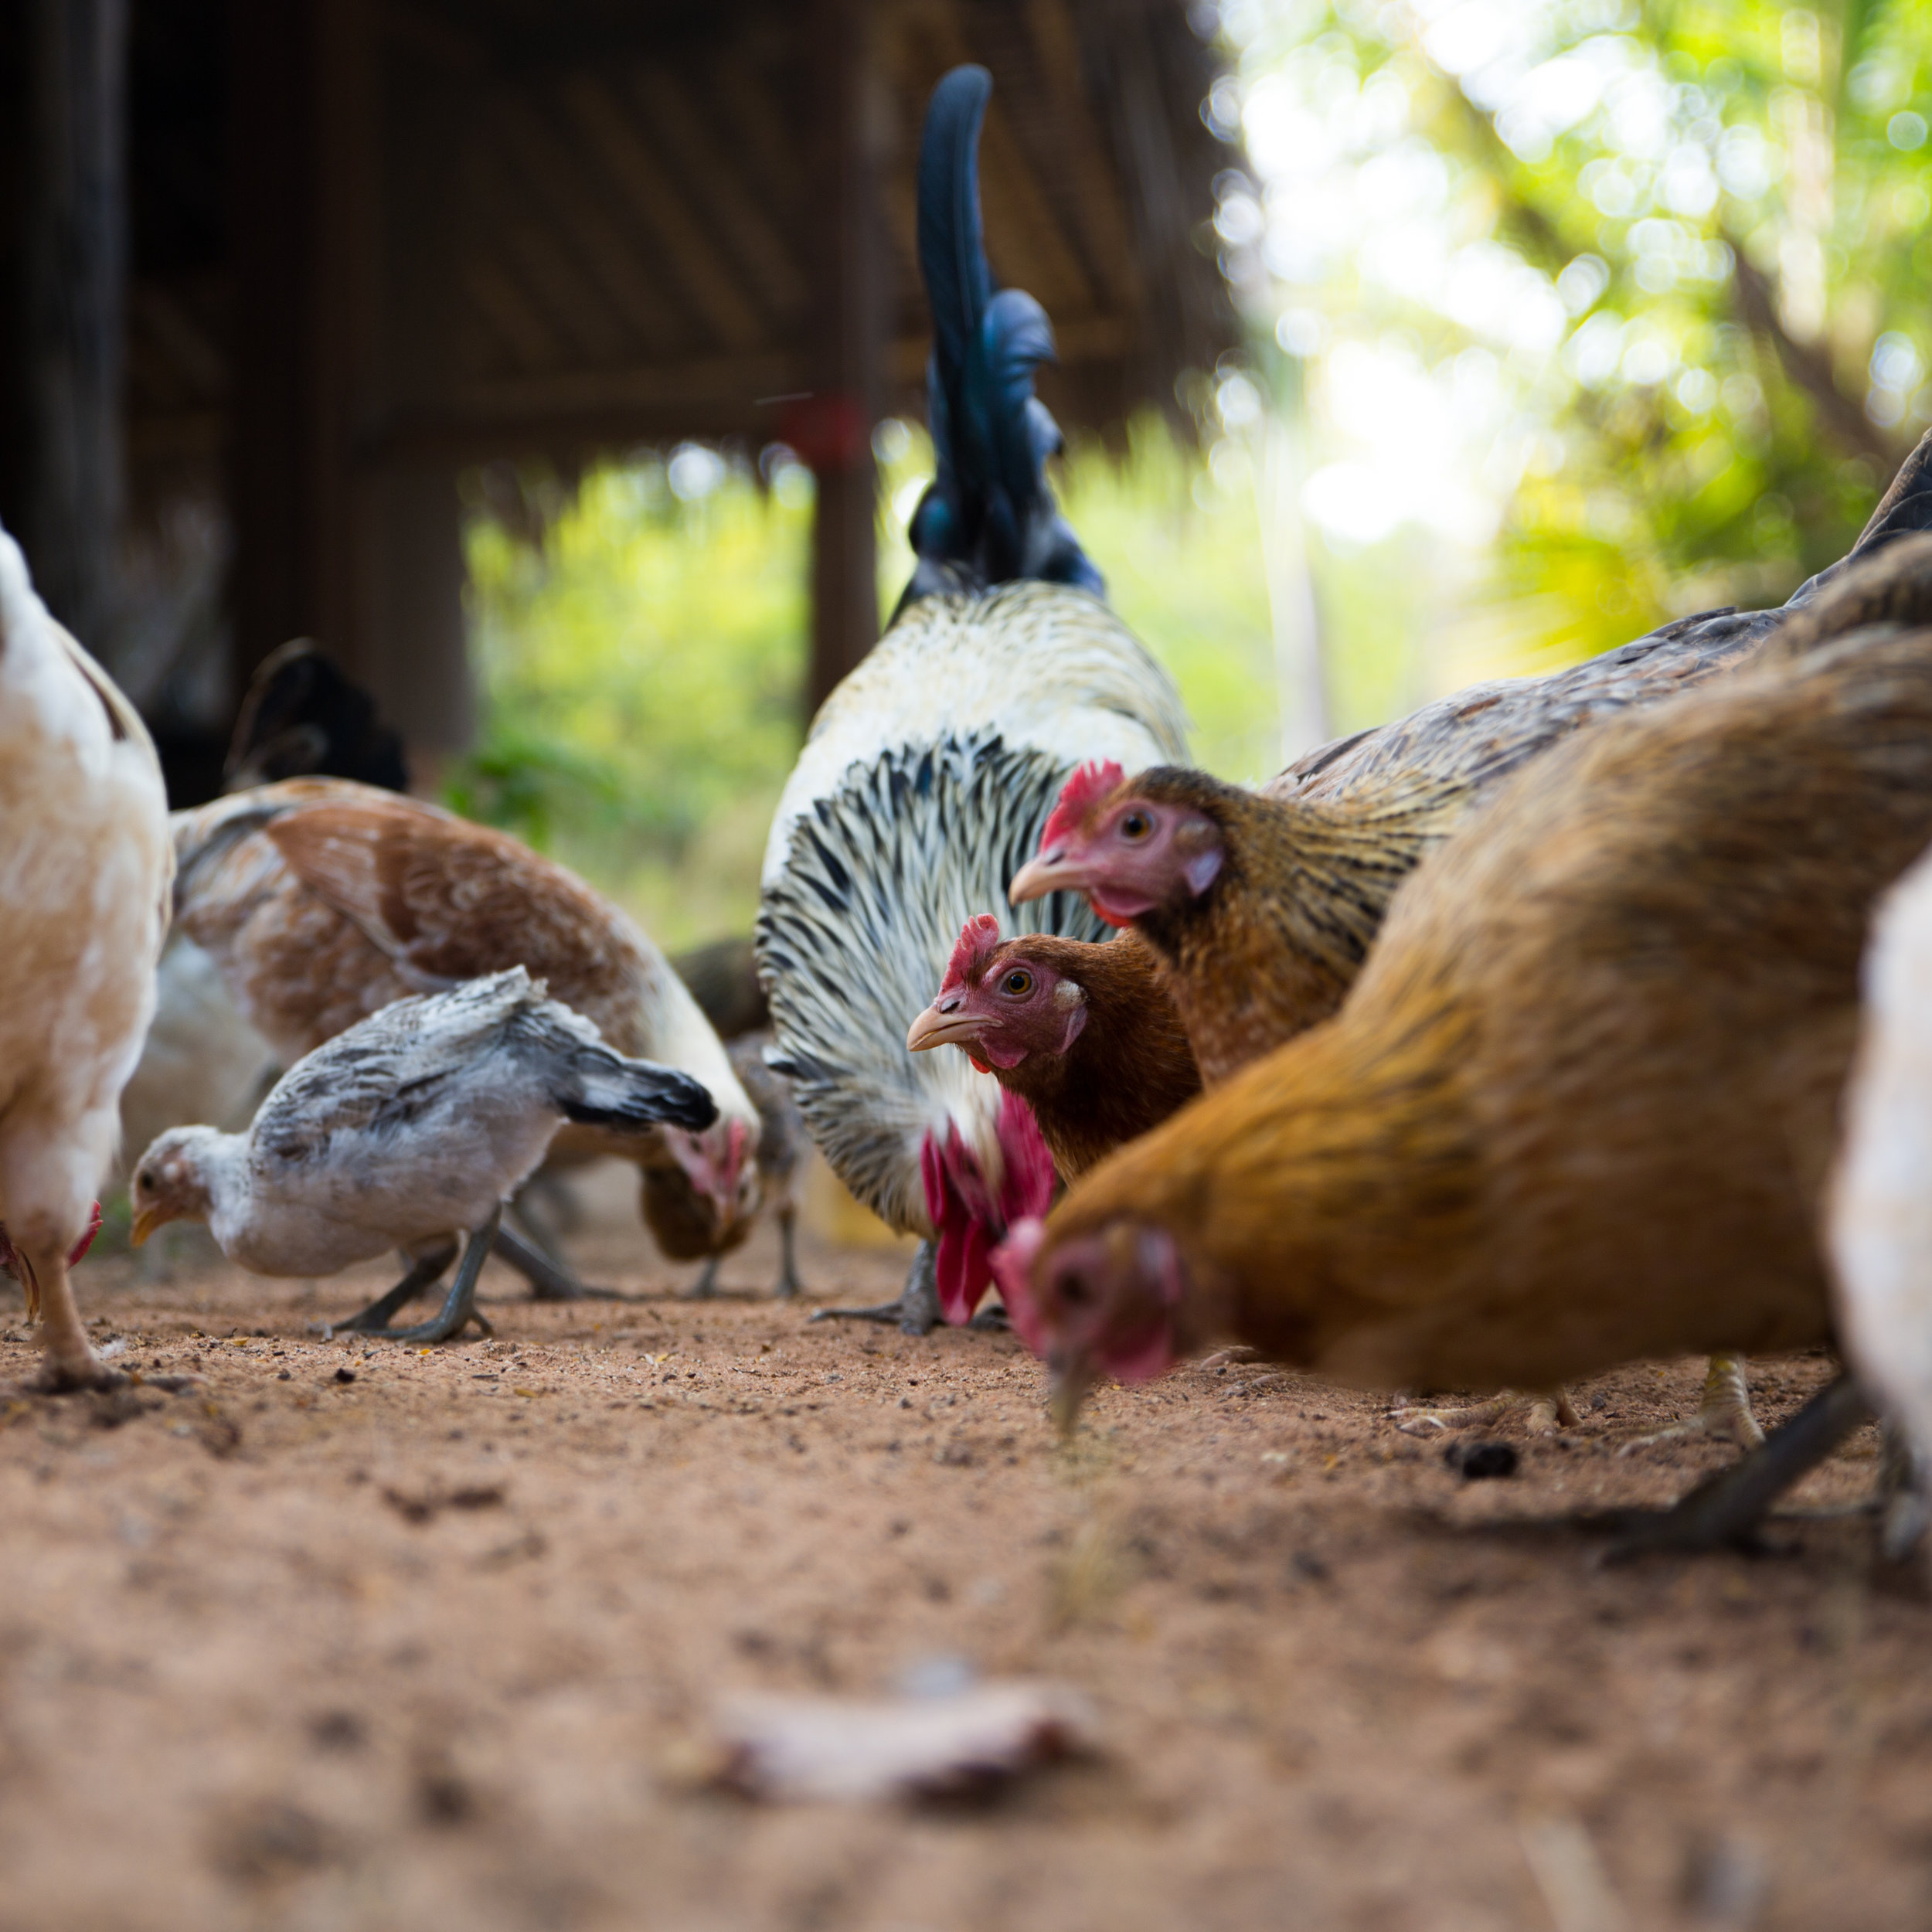 Chickens   We breed a 'village' variety of chicken renowned for their full flavour and lean tender meat. They are fed a diet of whole grains and greens from the garden, and are regularly rotated through the nursery where they scratch and forage their way to healthier soil.